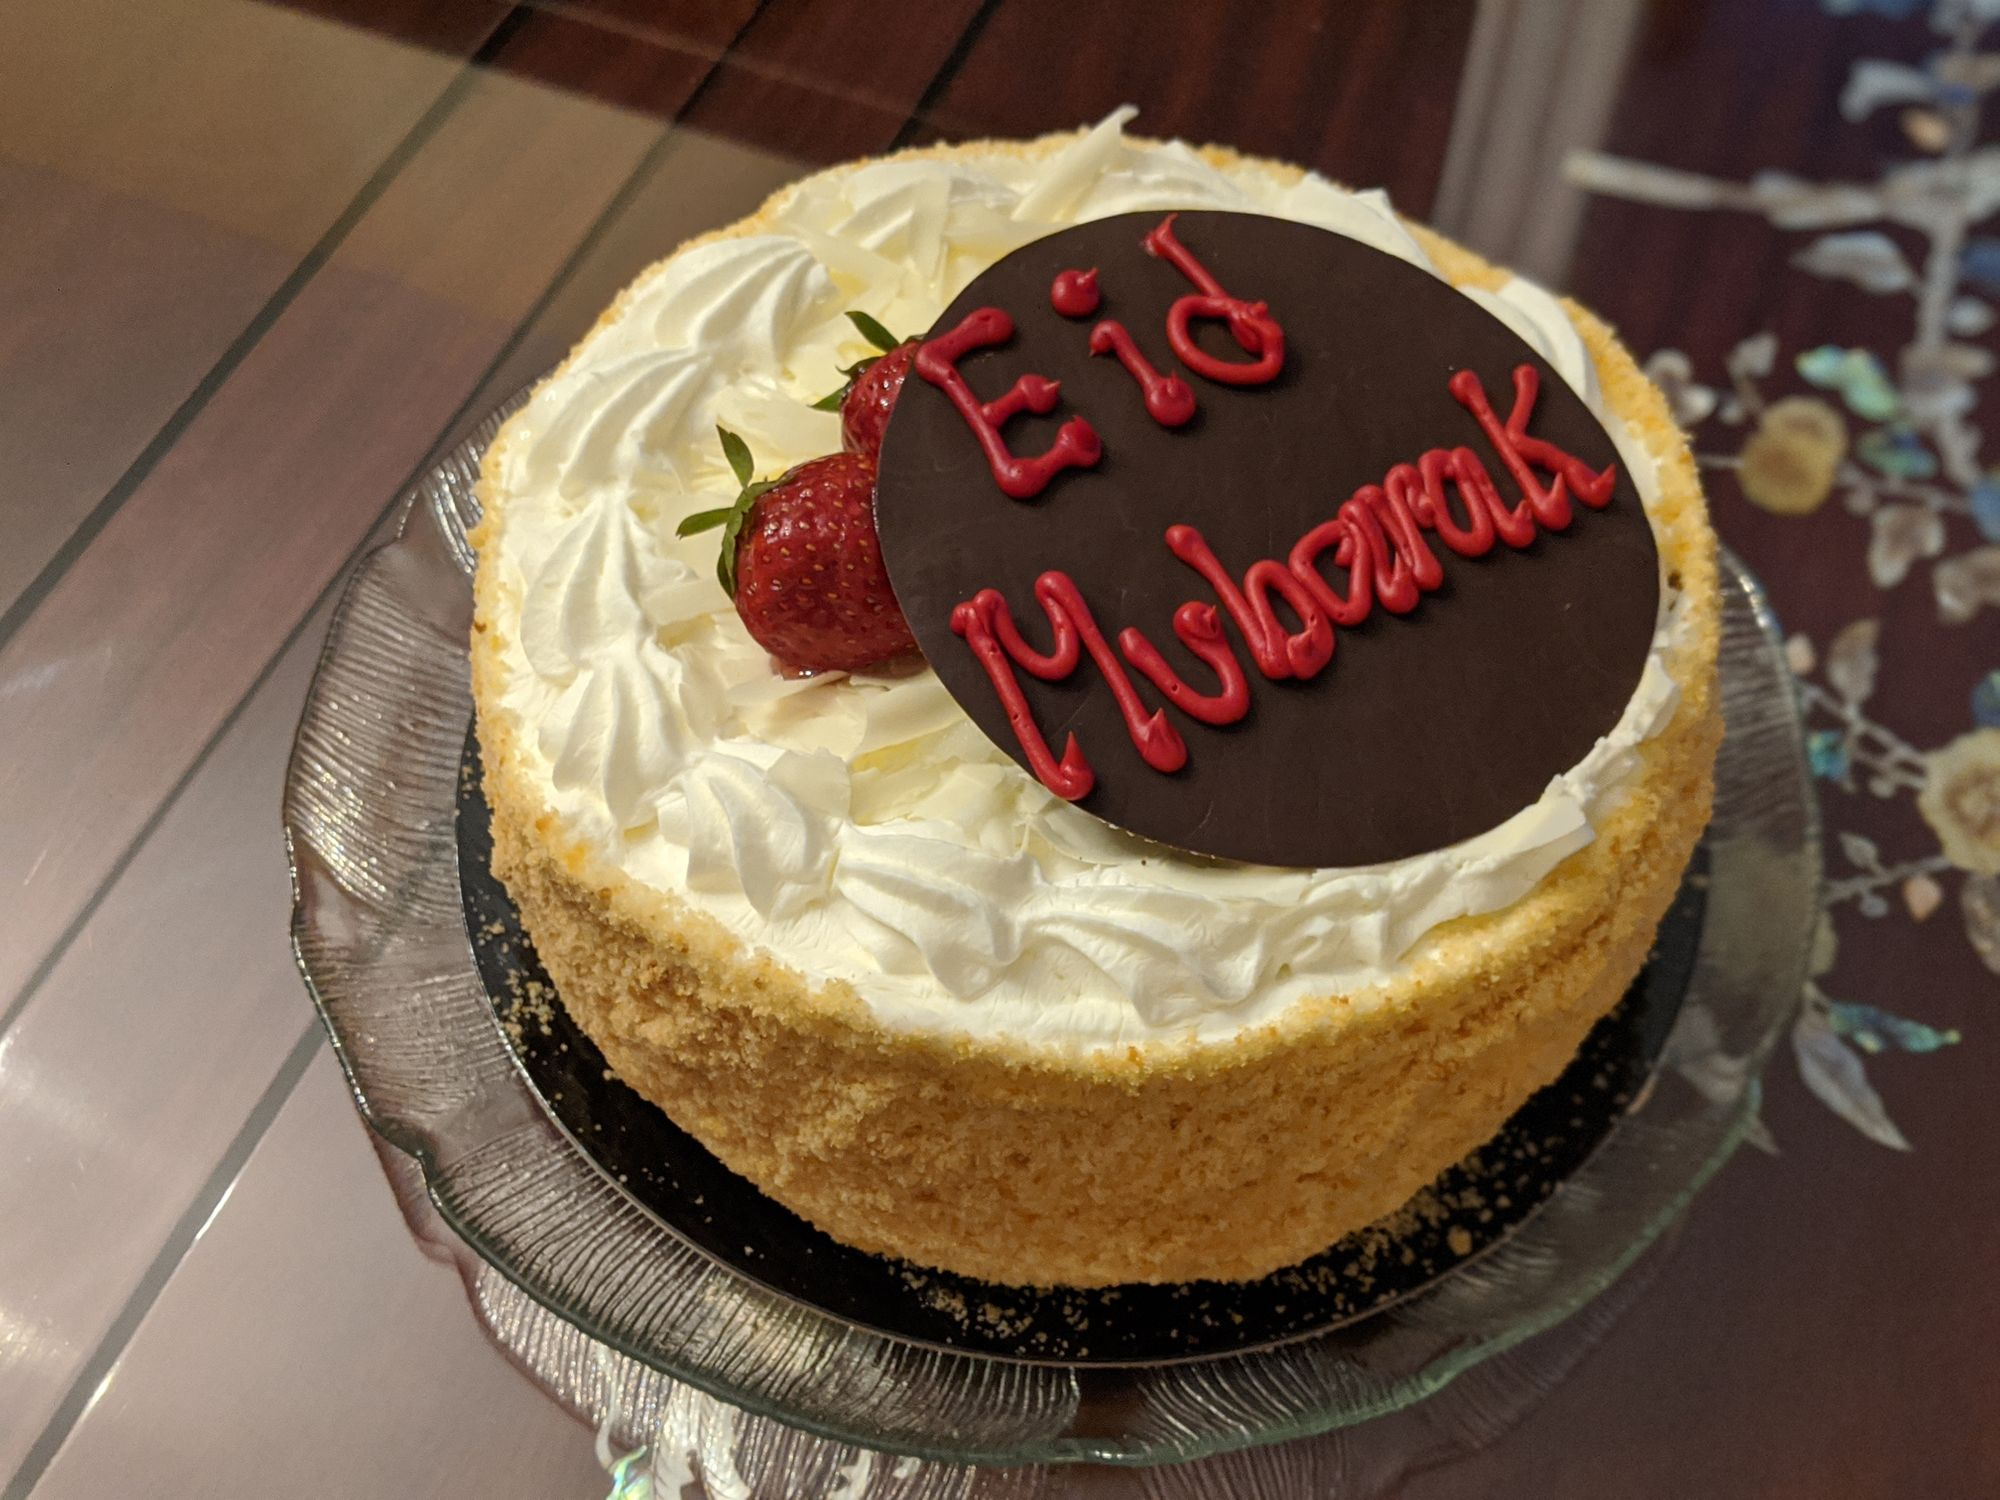 A strawberry shortcake with breadcrumbs around the sides, white icing on top and two strawberries holding up a small chocolate plate that says Eid Mubarak.up